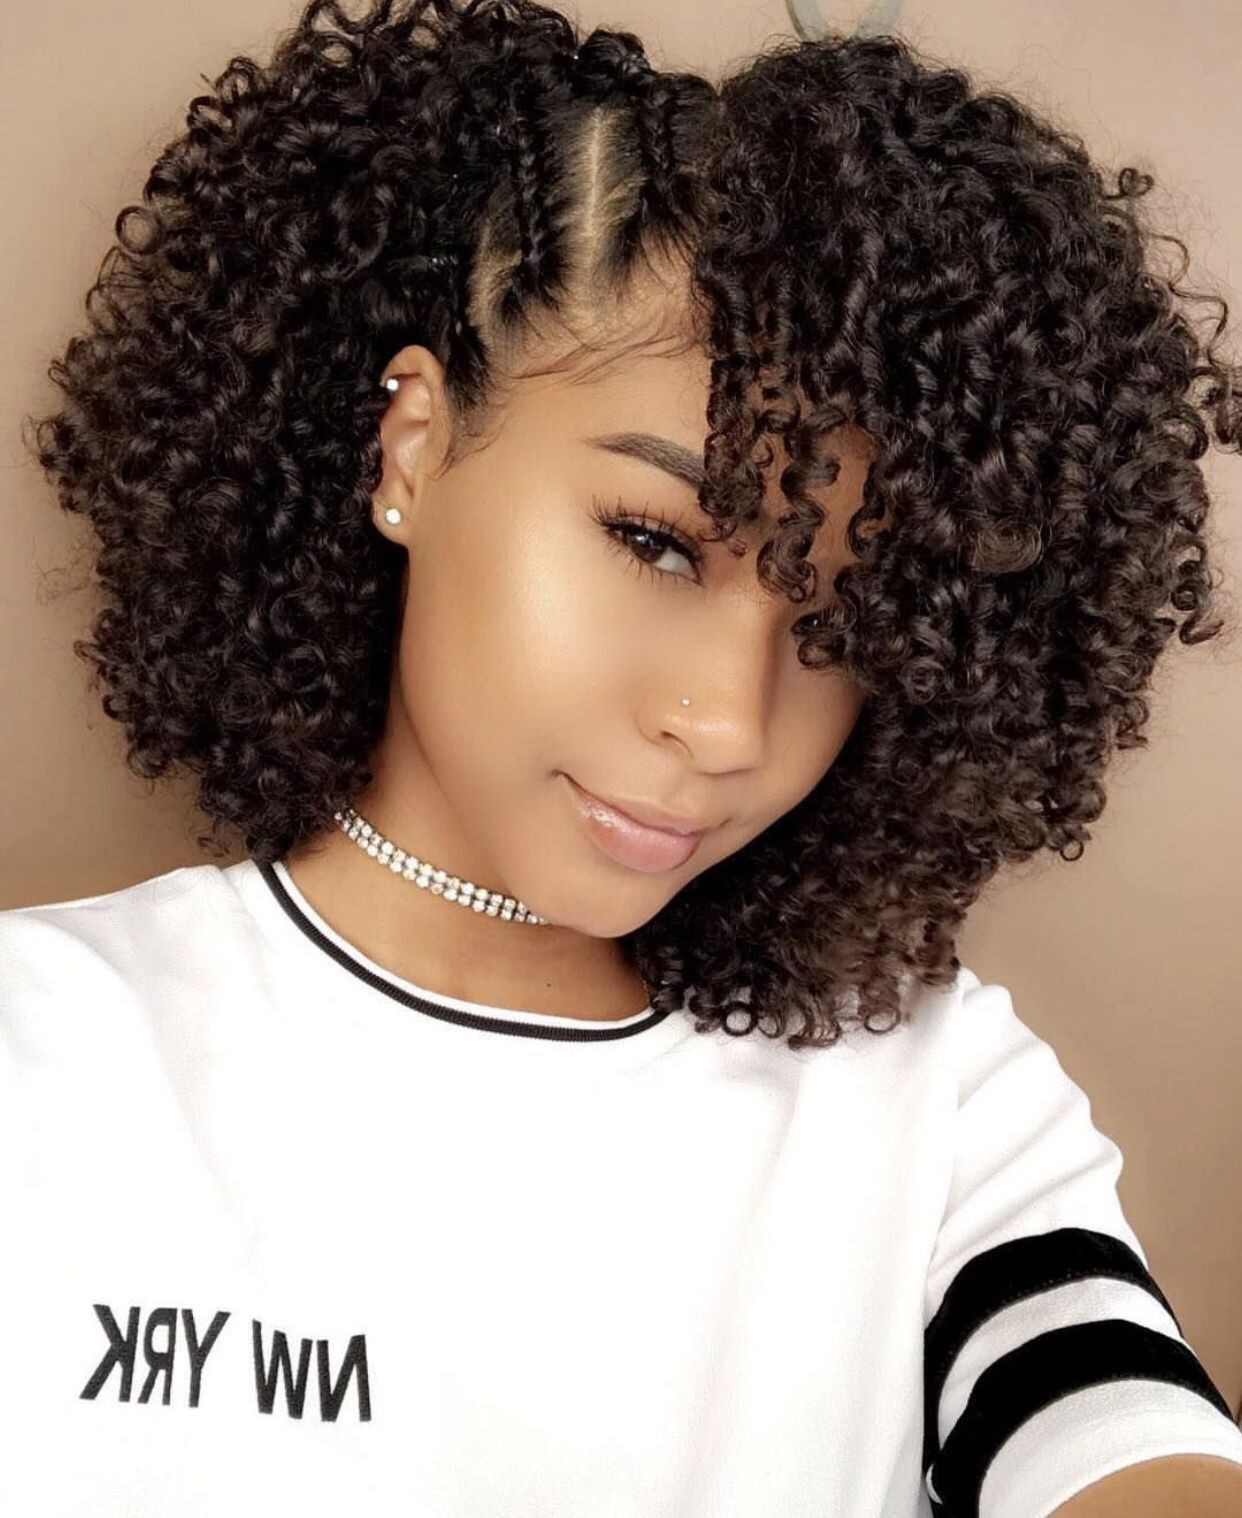 Youtube Naturally Mystique Pinterest Champagnemamii Jae Haircareforcurlyhair Haircareset Natural Hair Styles Hair Inspiration Curly Hair Styles